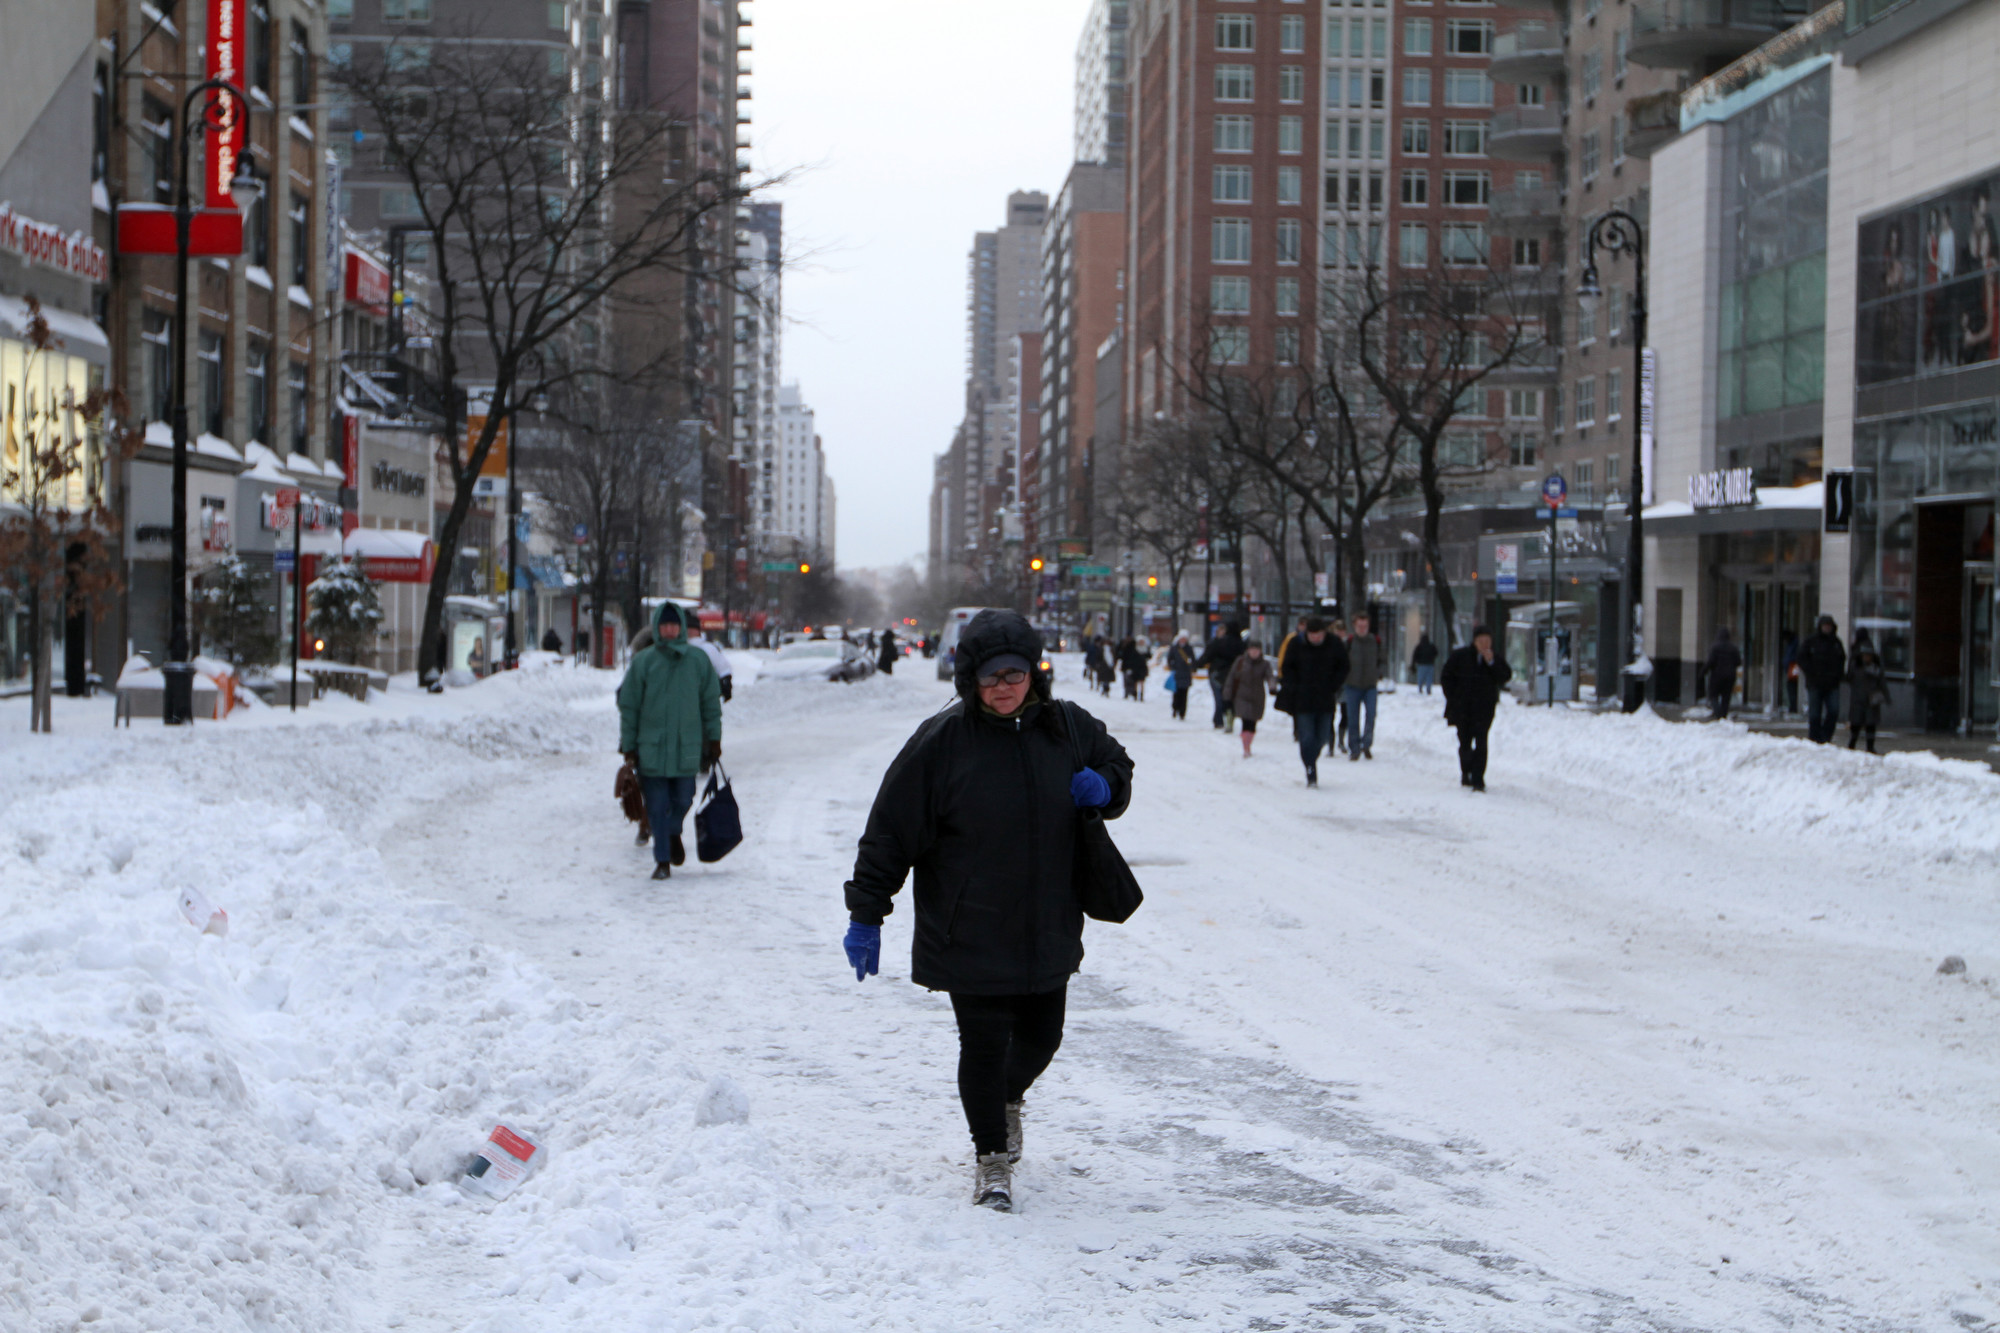 Sloppy winter storm poised to bring snow, rain and ice starting Sunday